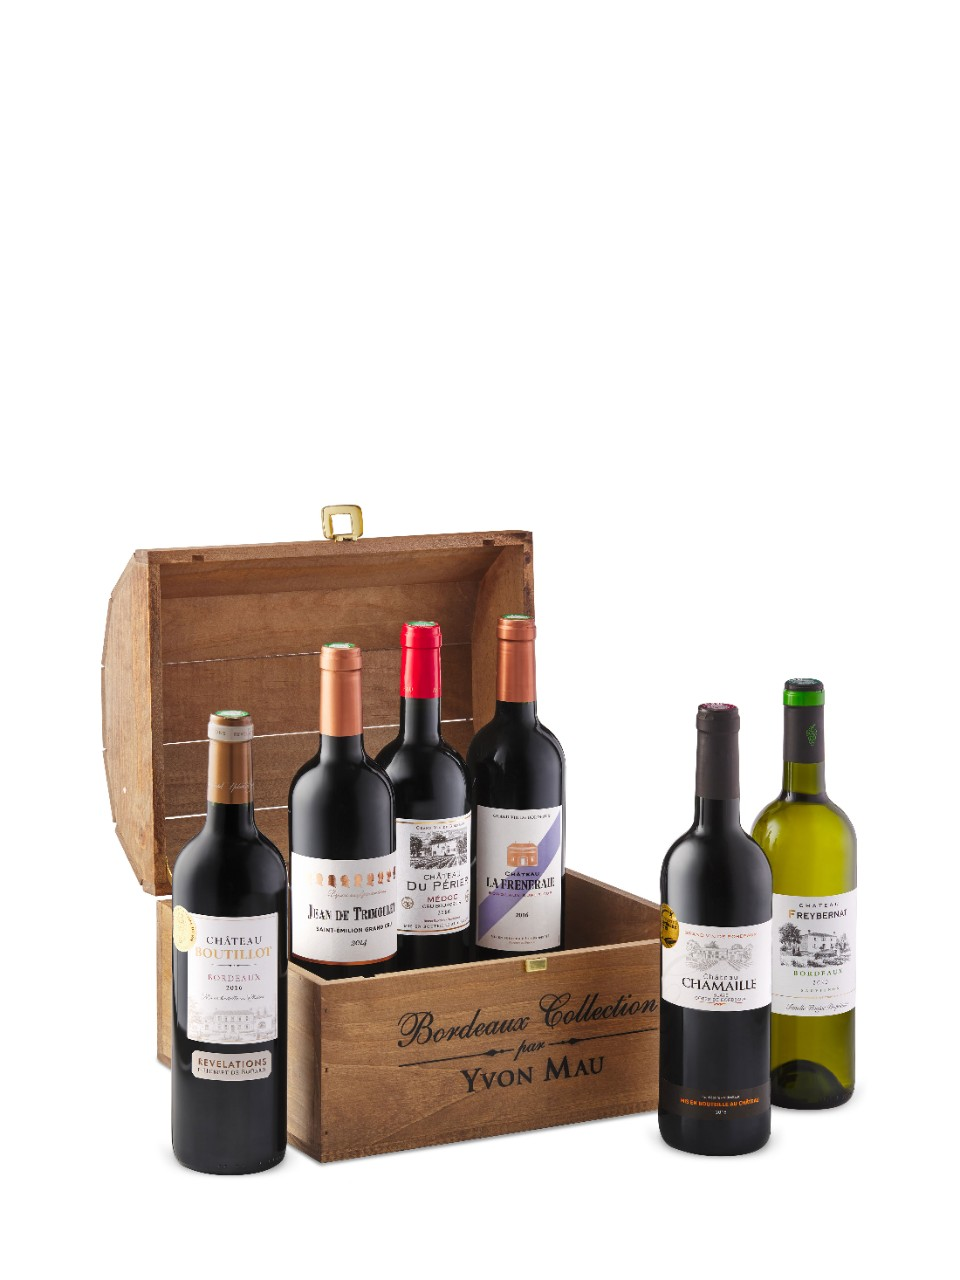 Image for Yvon Mau Bordeaux Discovery Chest from LCBO